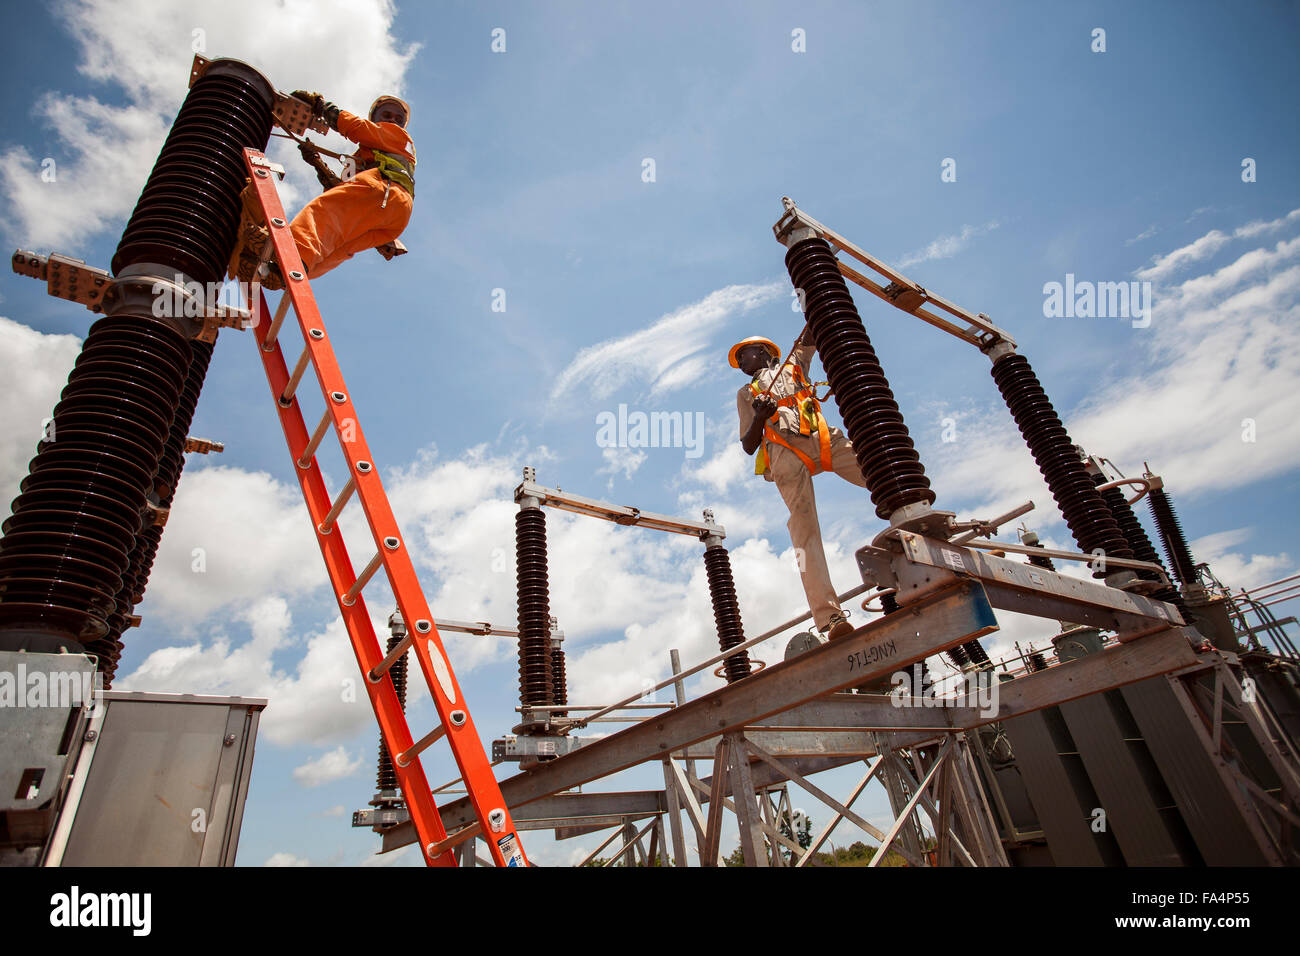 Nice Bulldogsecurity.com Wiring Big Free Technical Service Bulletins Online Square Dimarzio Ep1112 Dimarzio 3 Way Switch Young Tsb Bulletins FreshDiagram Of Solar Panel System Electrical Engineers Assist In The Construction Of A New ..